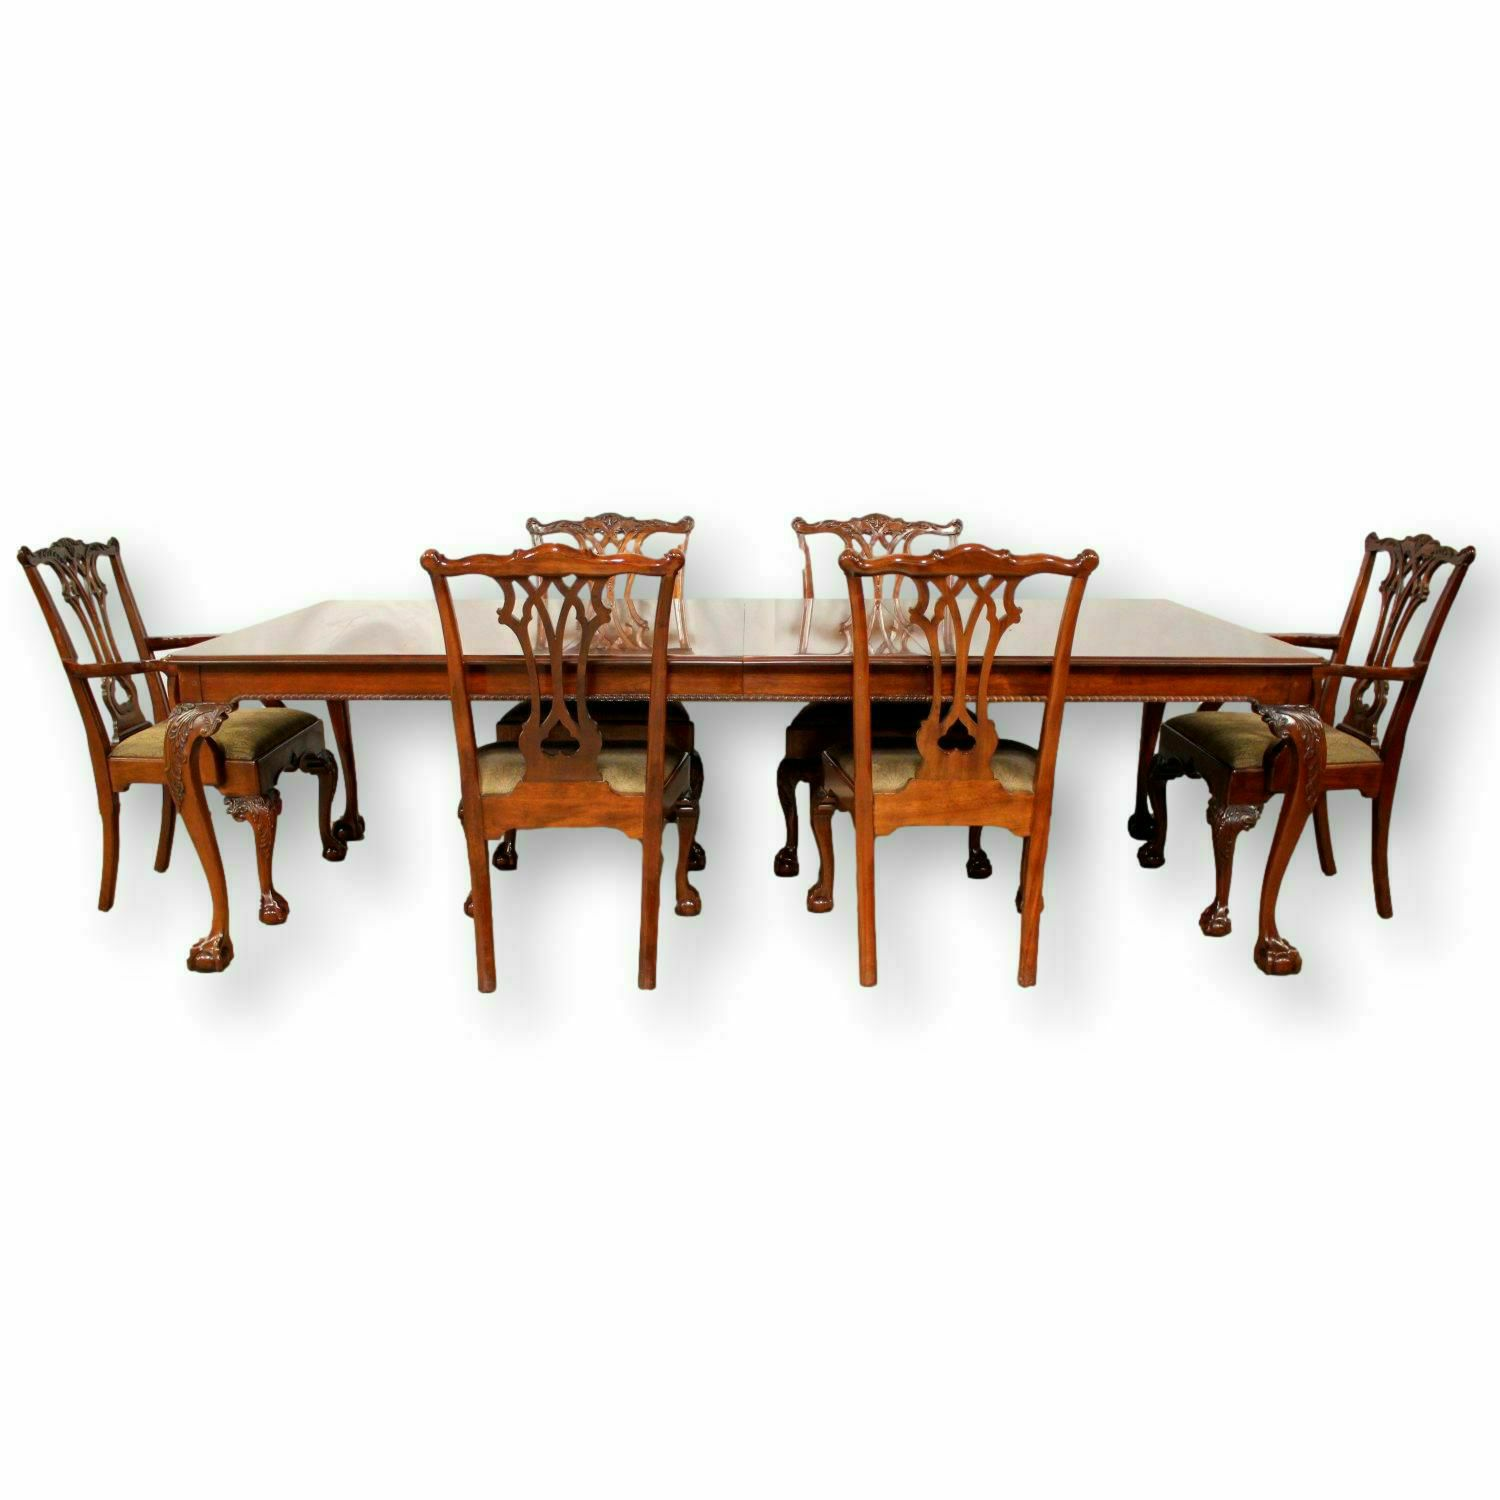 Stickley-Dining-Table-w-6-Chairs_92387A.jpg